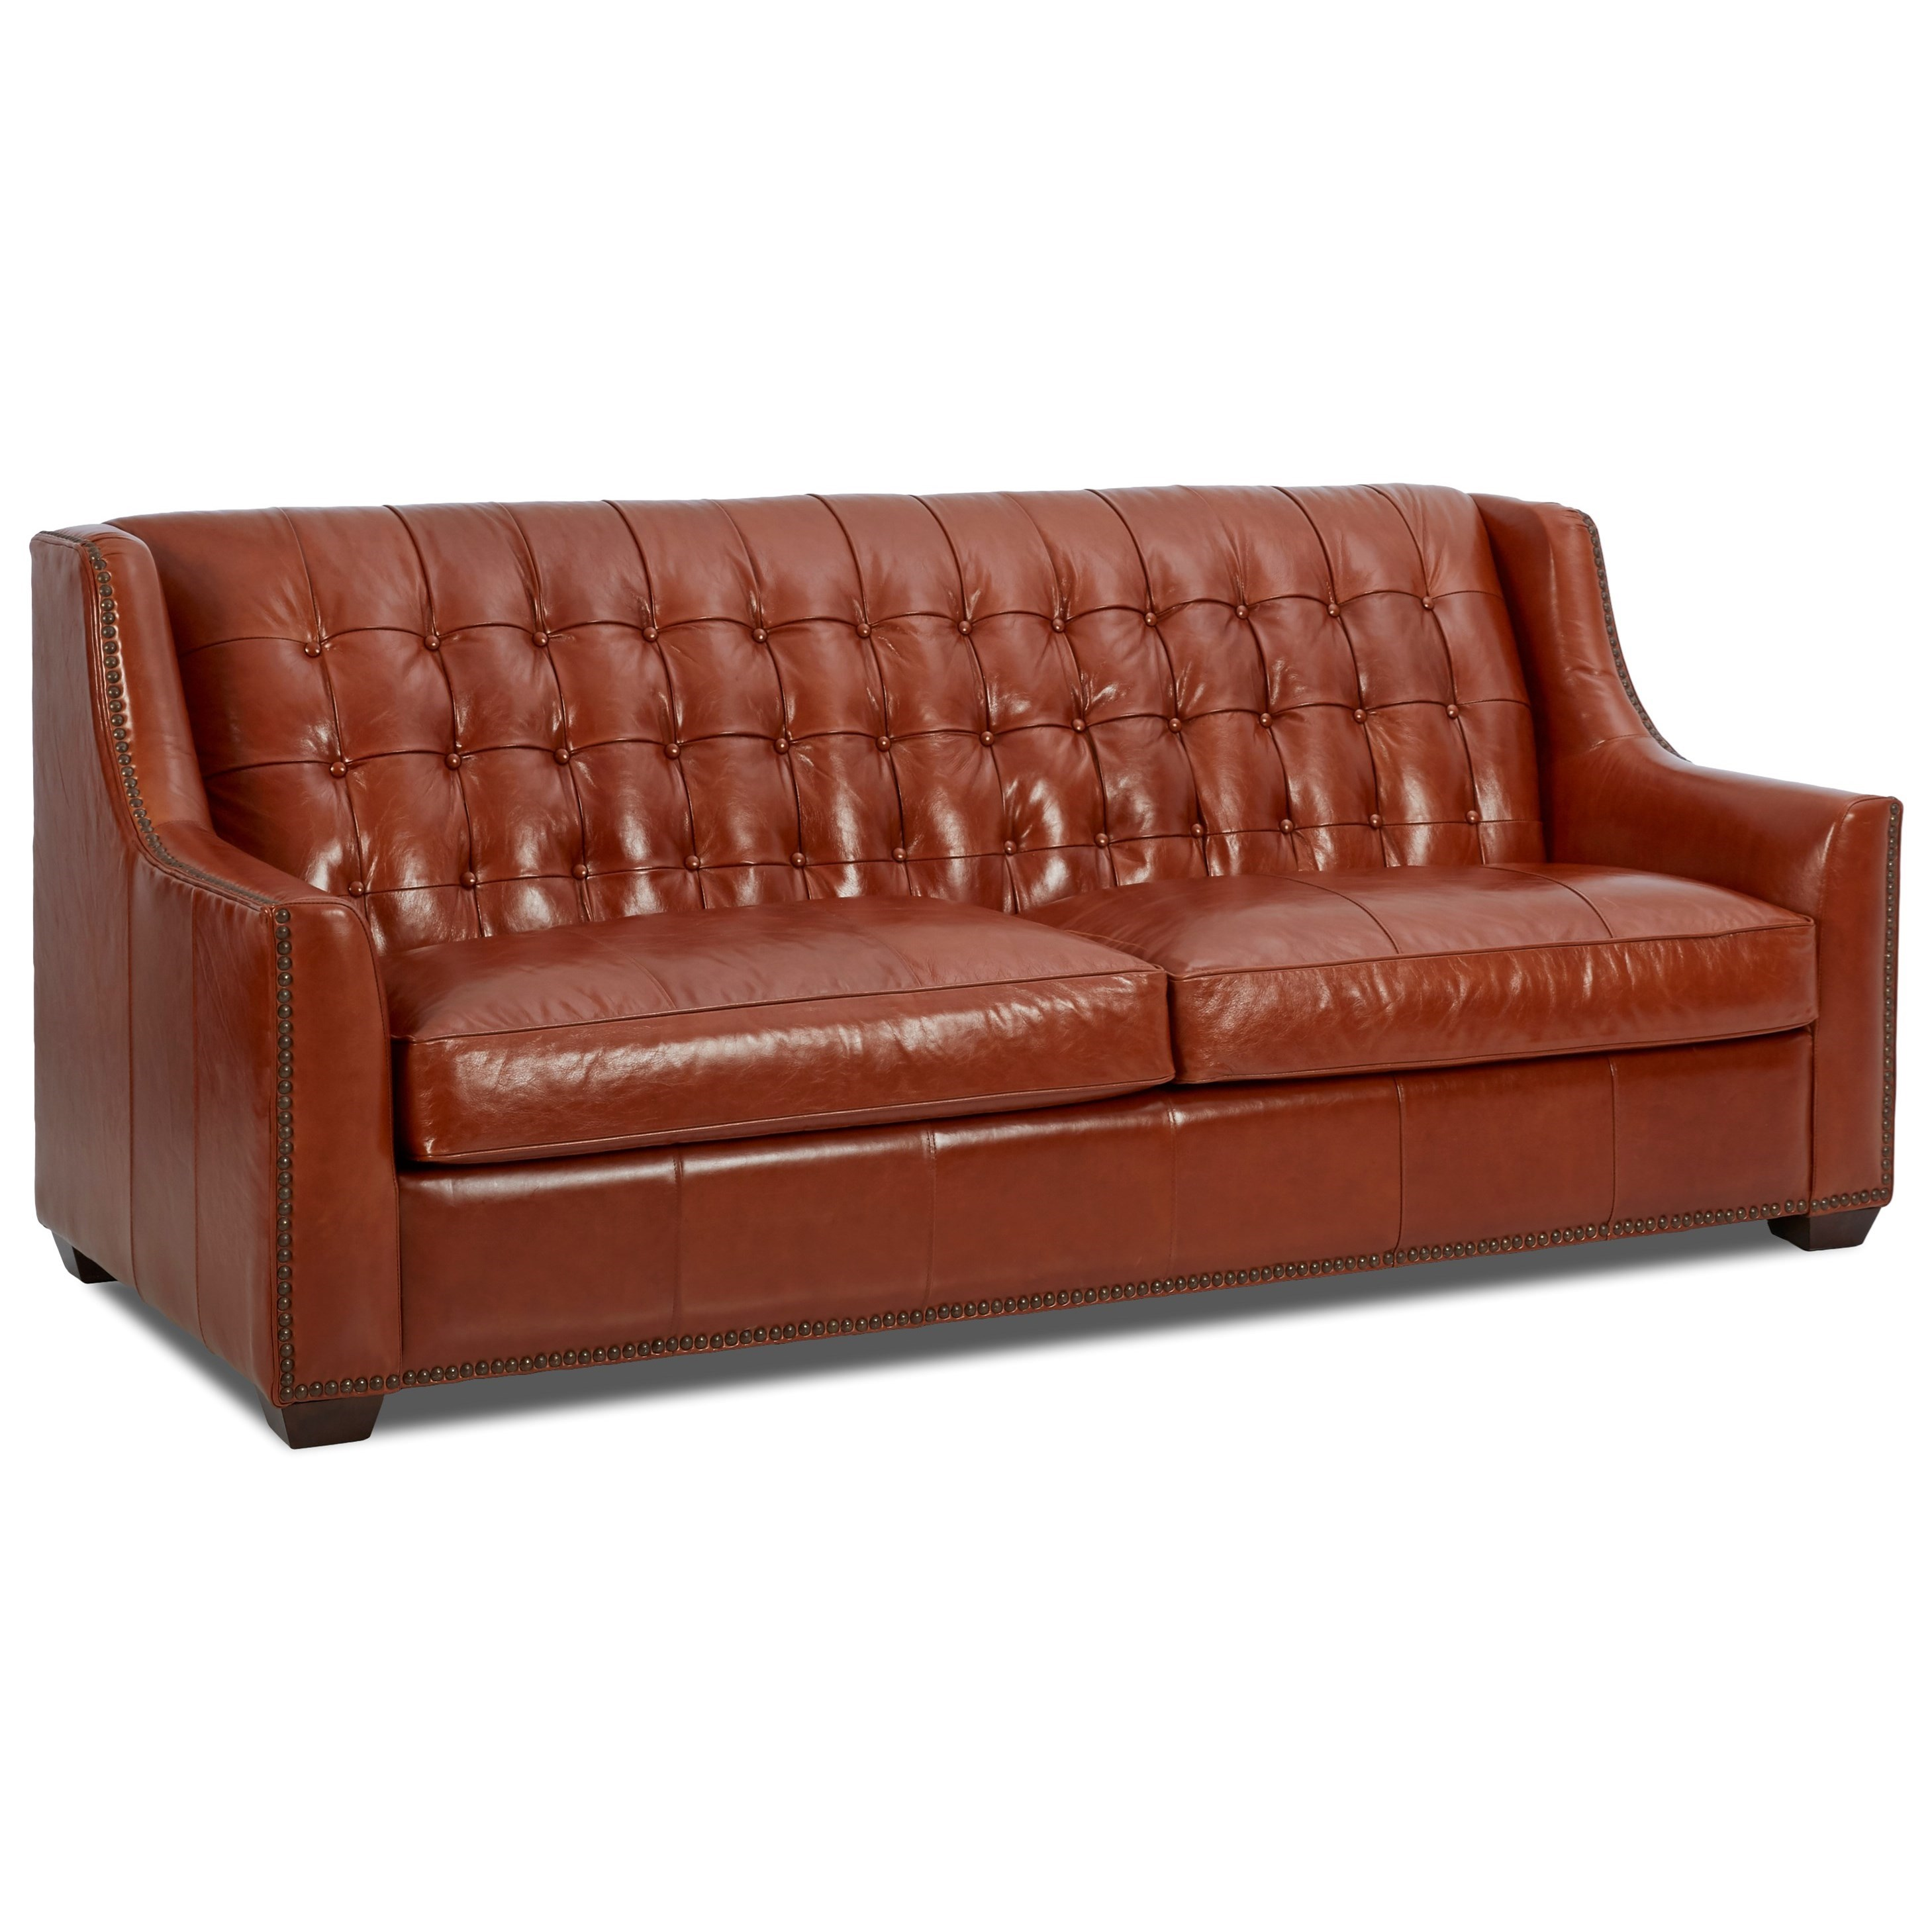 Transitional Leather Sofa with Button Tufting by Klaussner